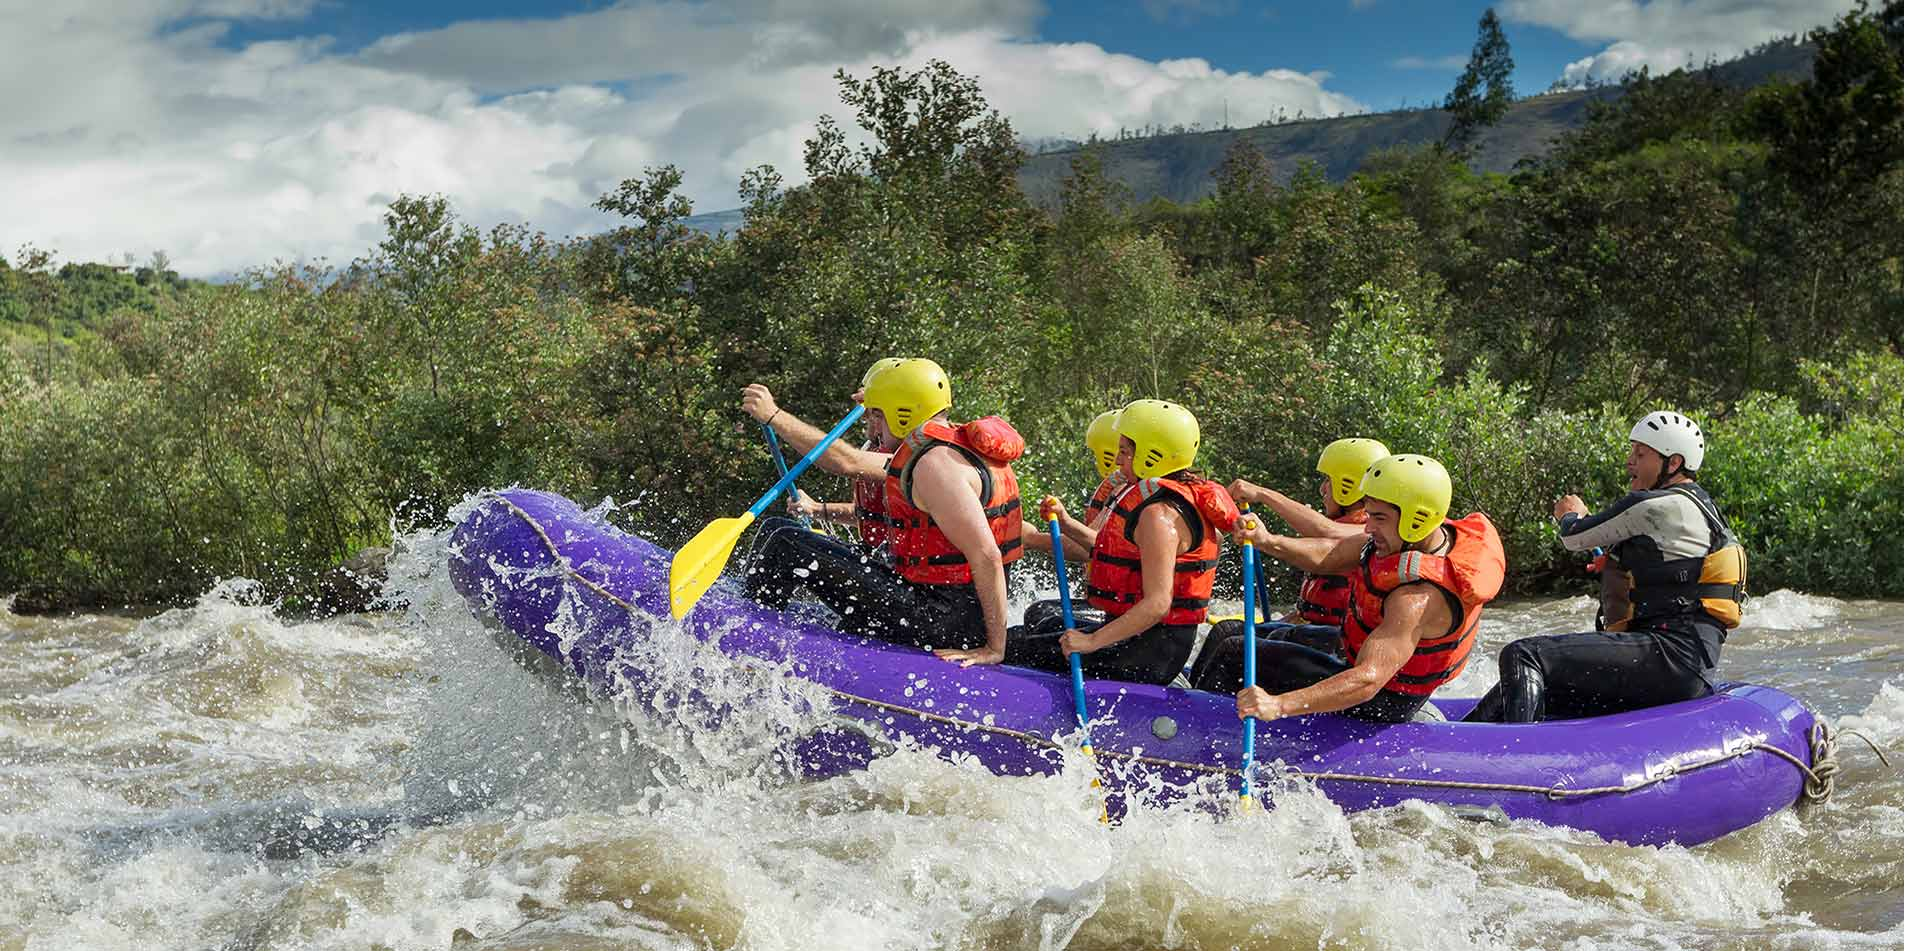 South America Peru Urubamba River young adventurous group whitewater rafting - luxury vacation destinations